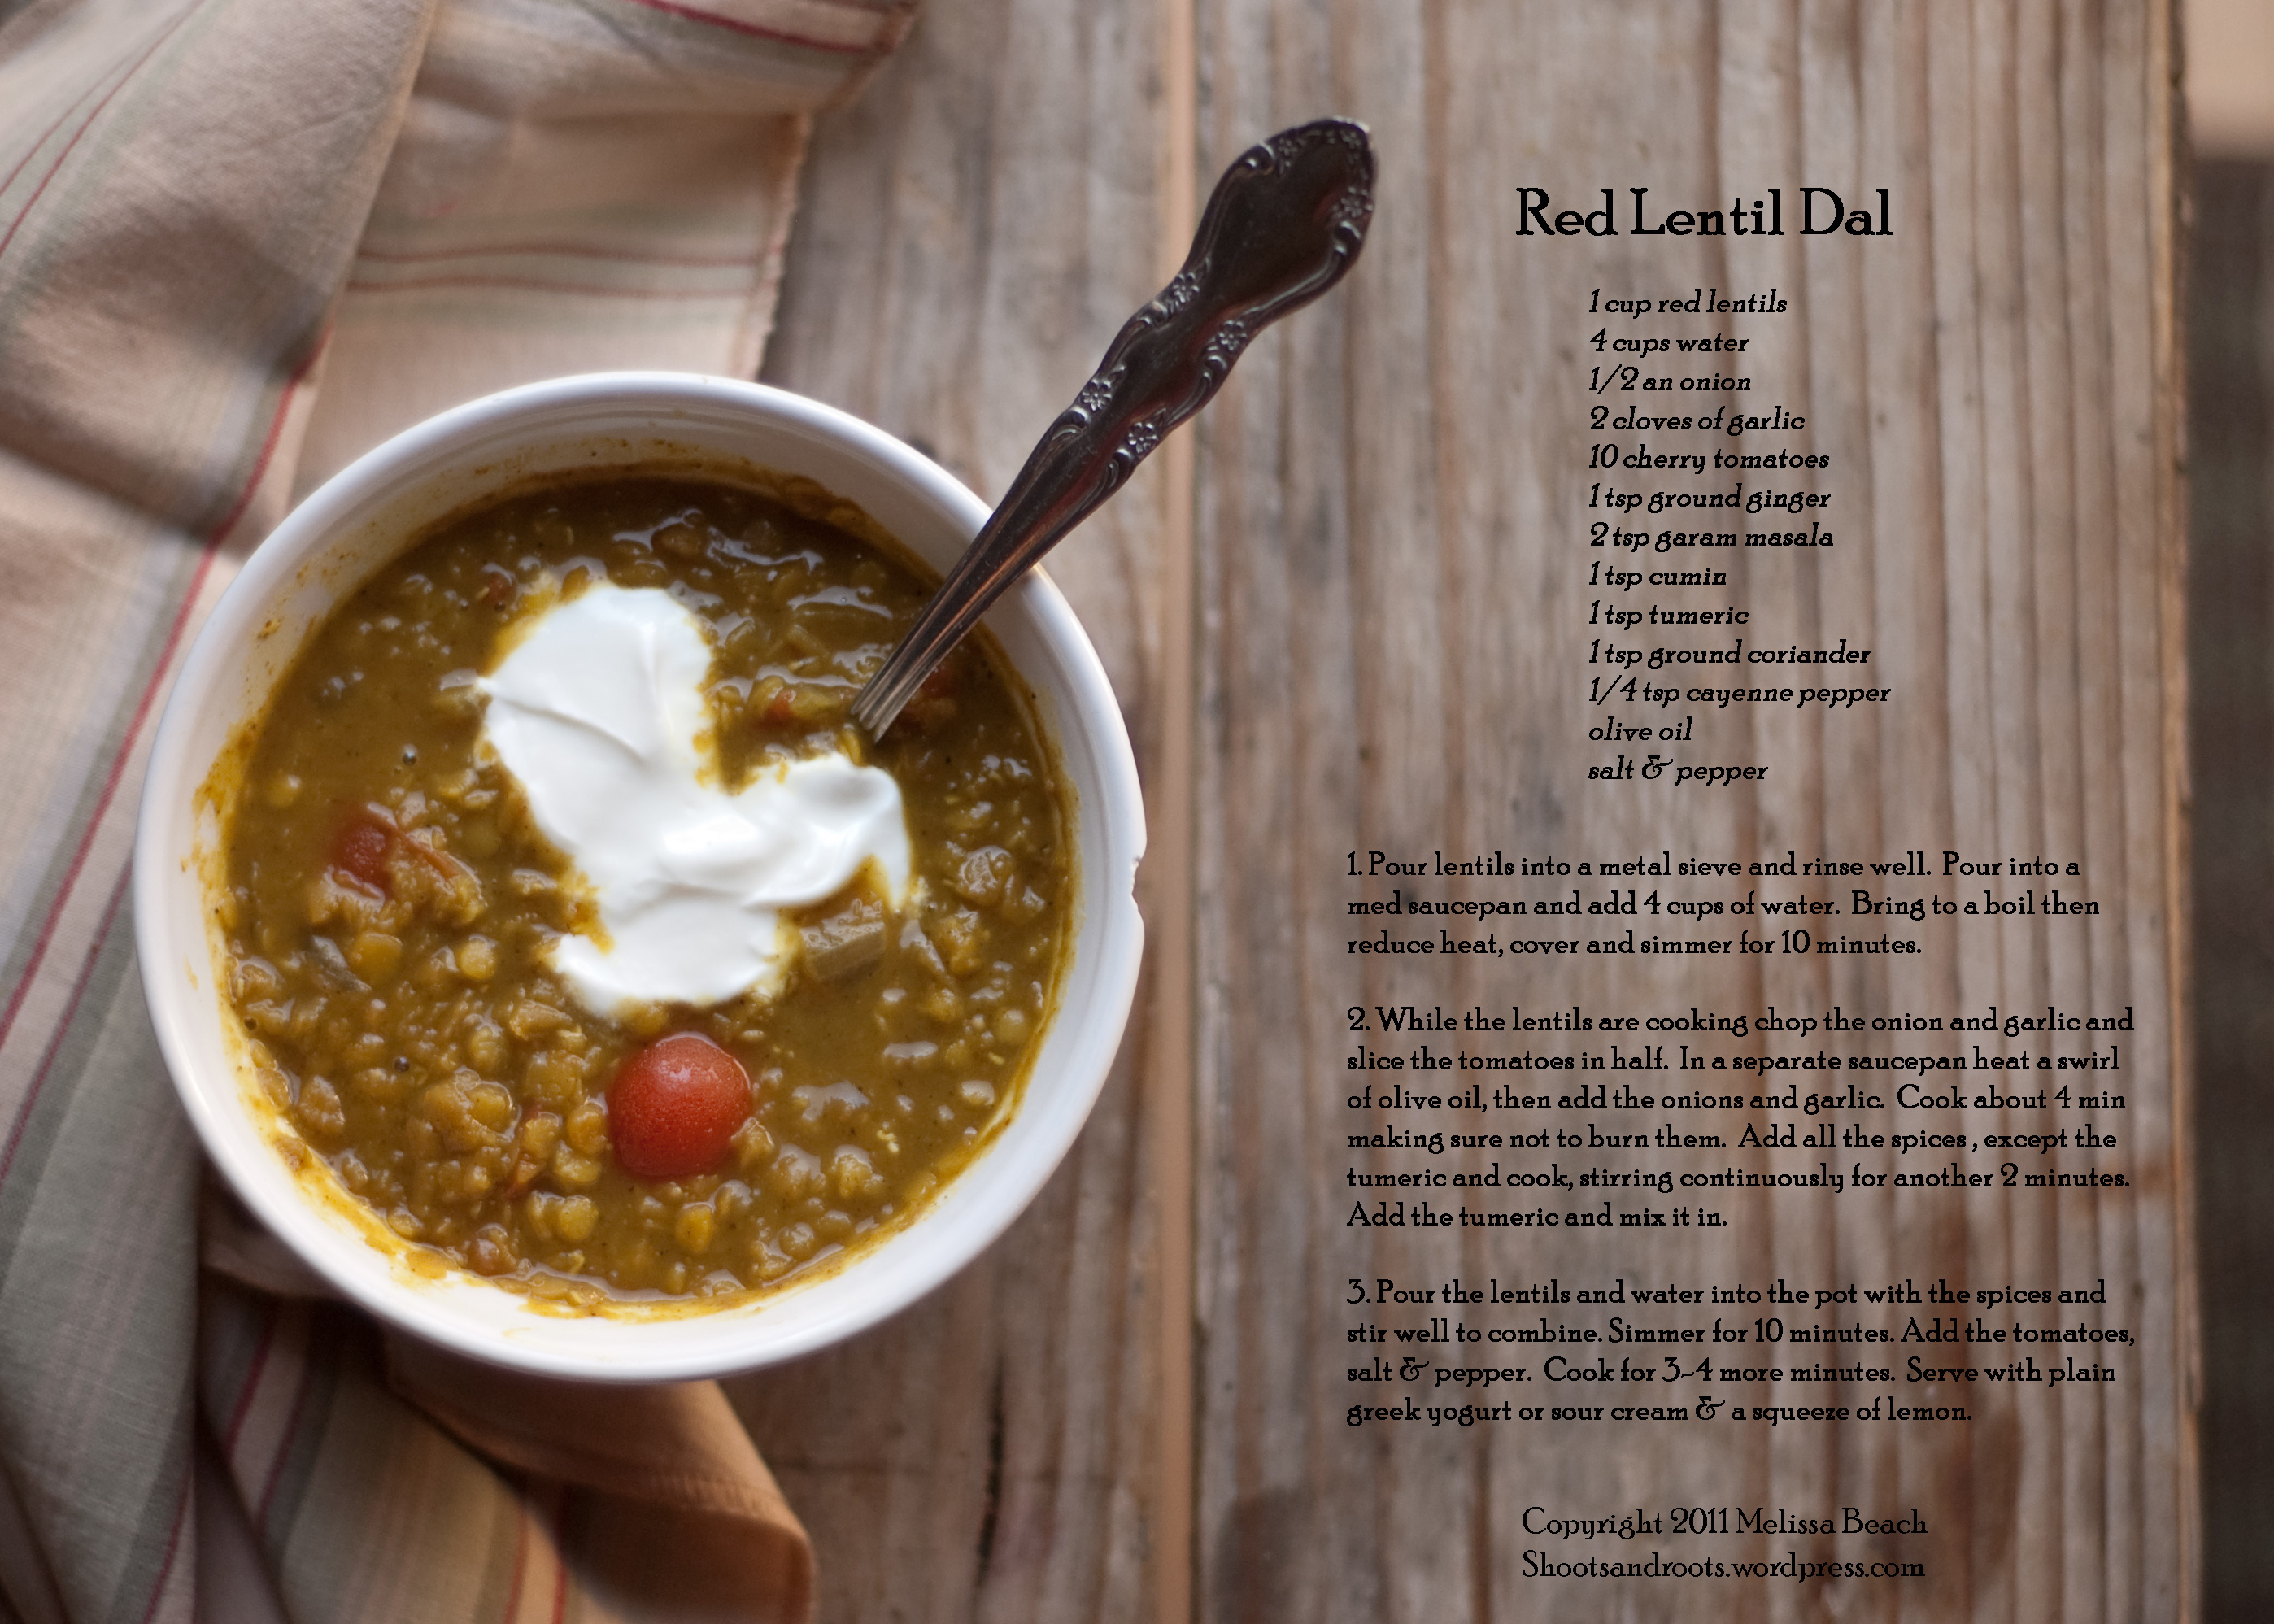 ... Recipe for Indian-Style Red Lentils with Ginger (Red Lentil Dal